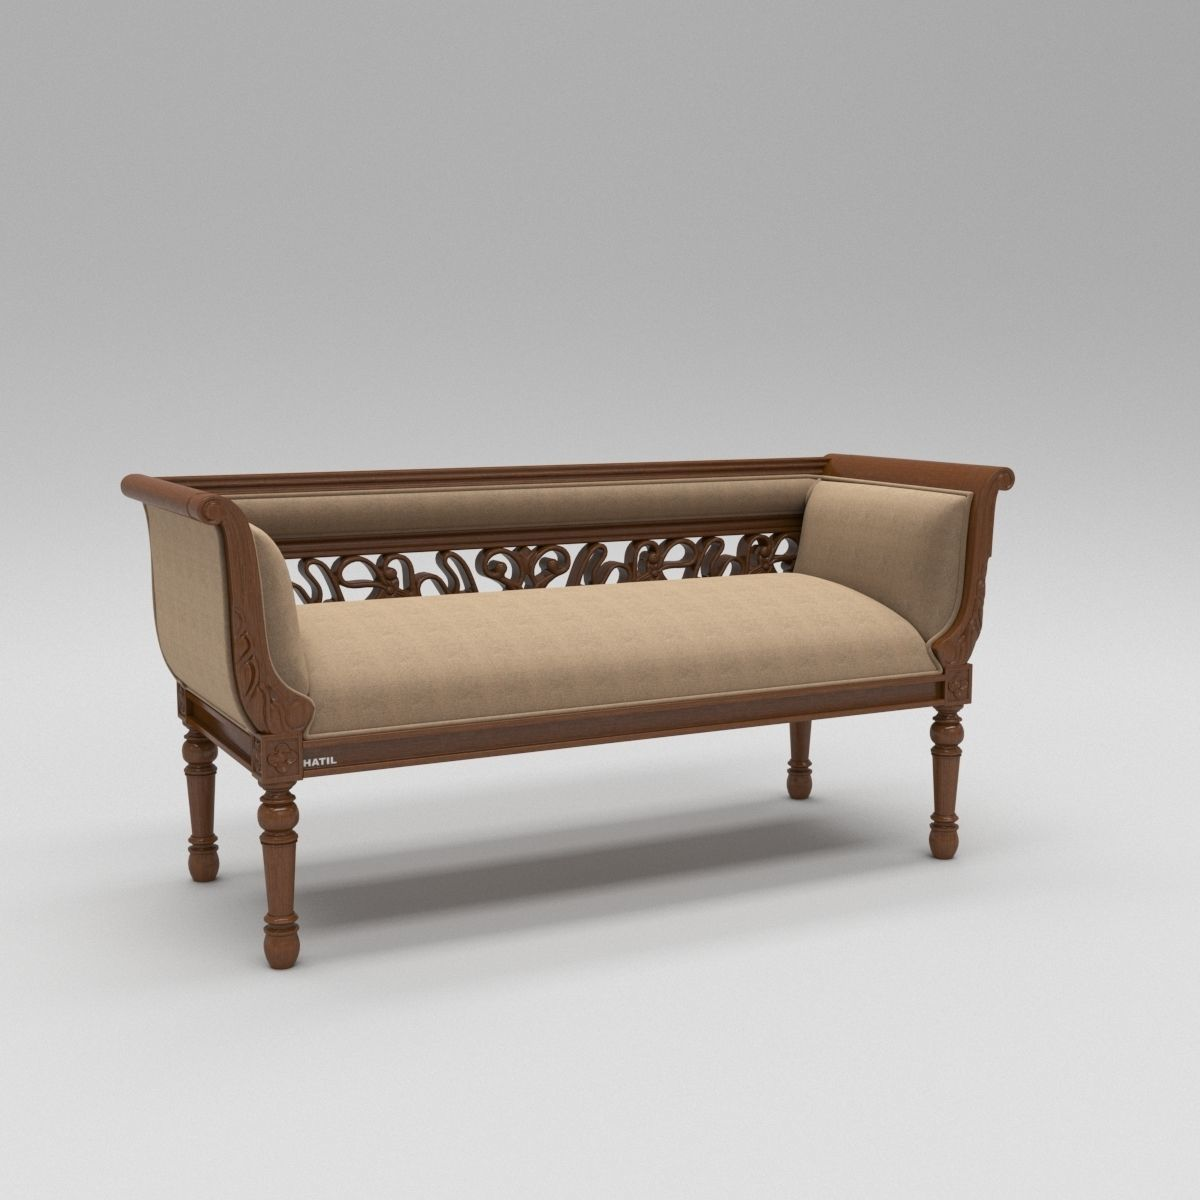 Brilliant Wooden Divan Sofa 3D Model Caraccident5 Cool Chair Designs And Ideas Caraccident5Info